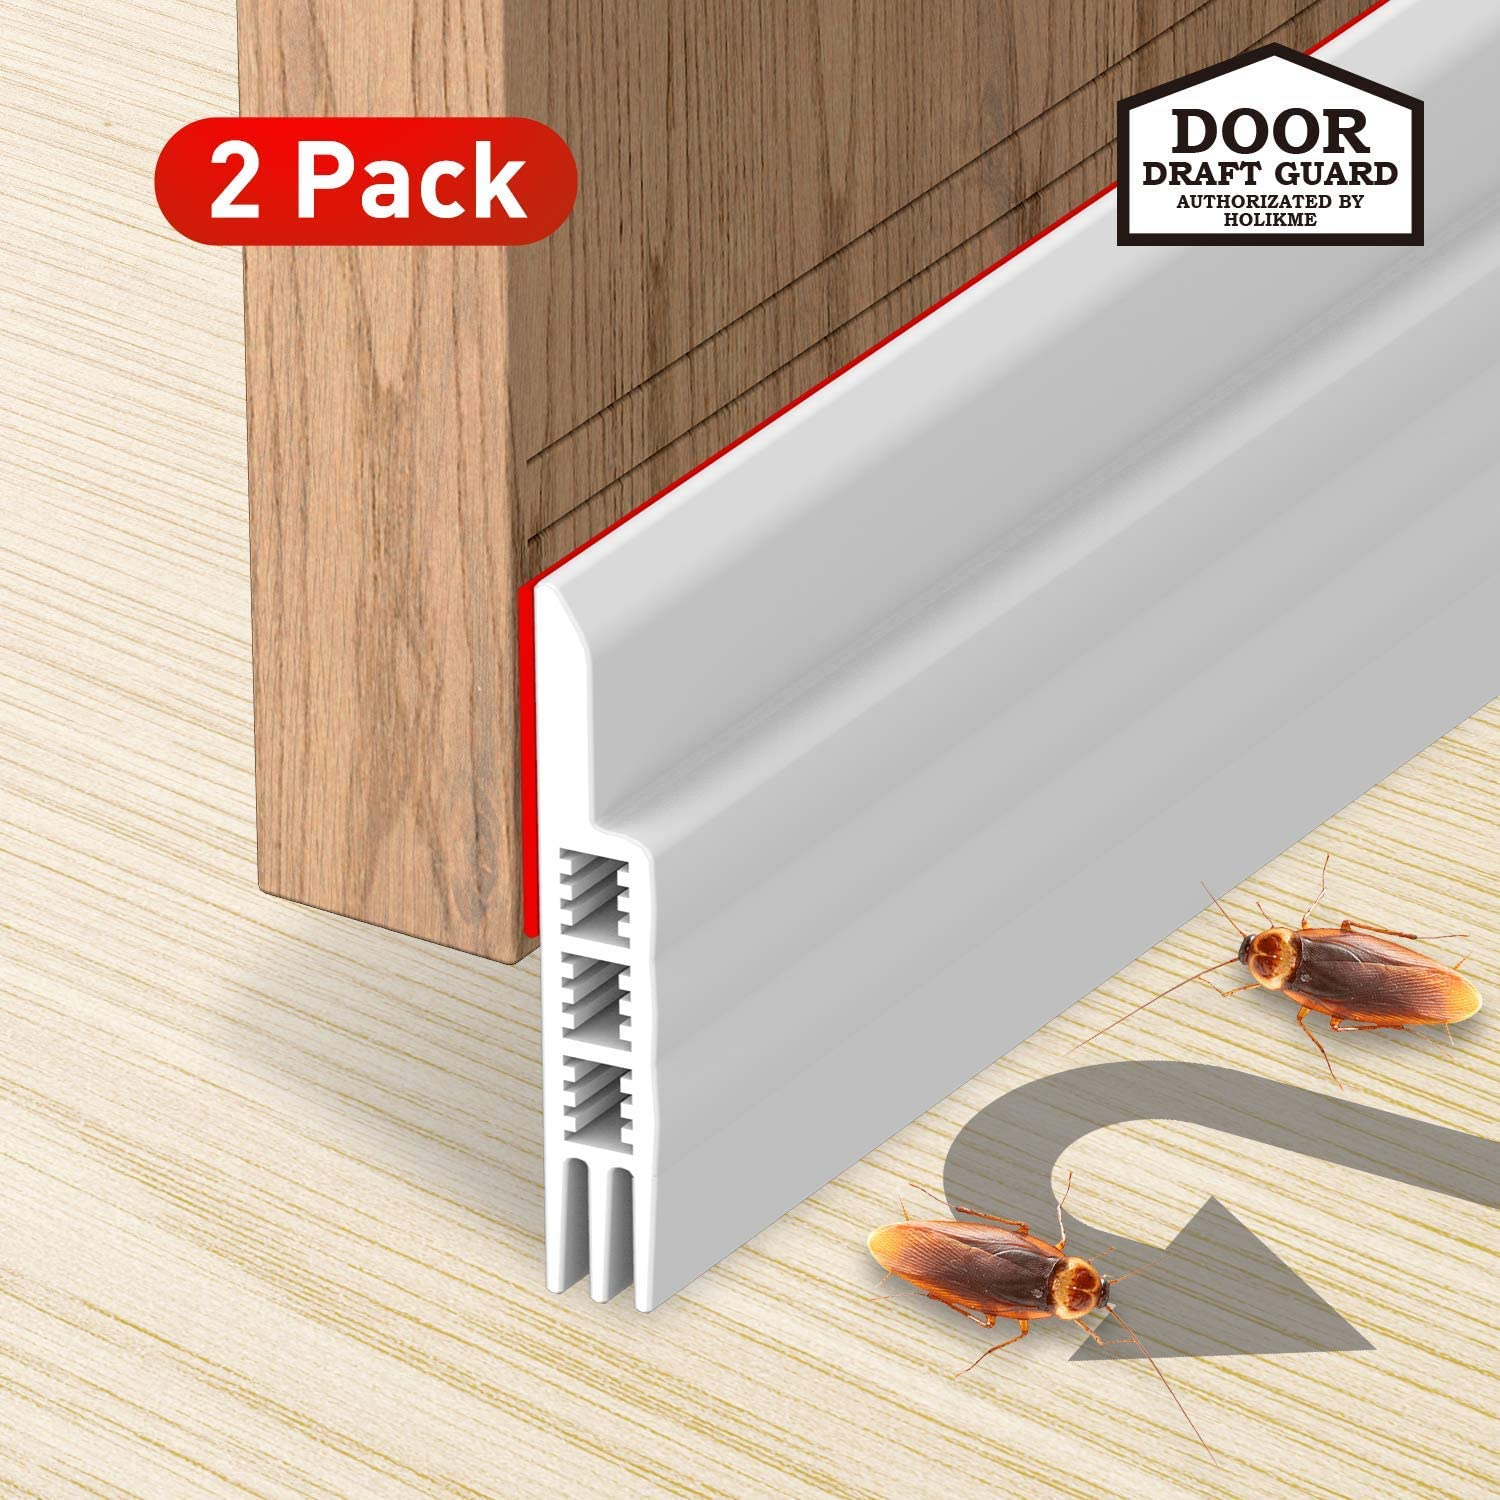 2 Pack Door Draft Stopper Under Door Draft Blocker Insulator Door Sweep Weather Stripping Noise Stopper Prevent Bugs Strong Adhesive White 39 Length